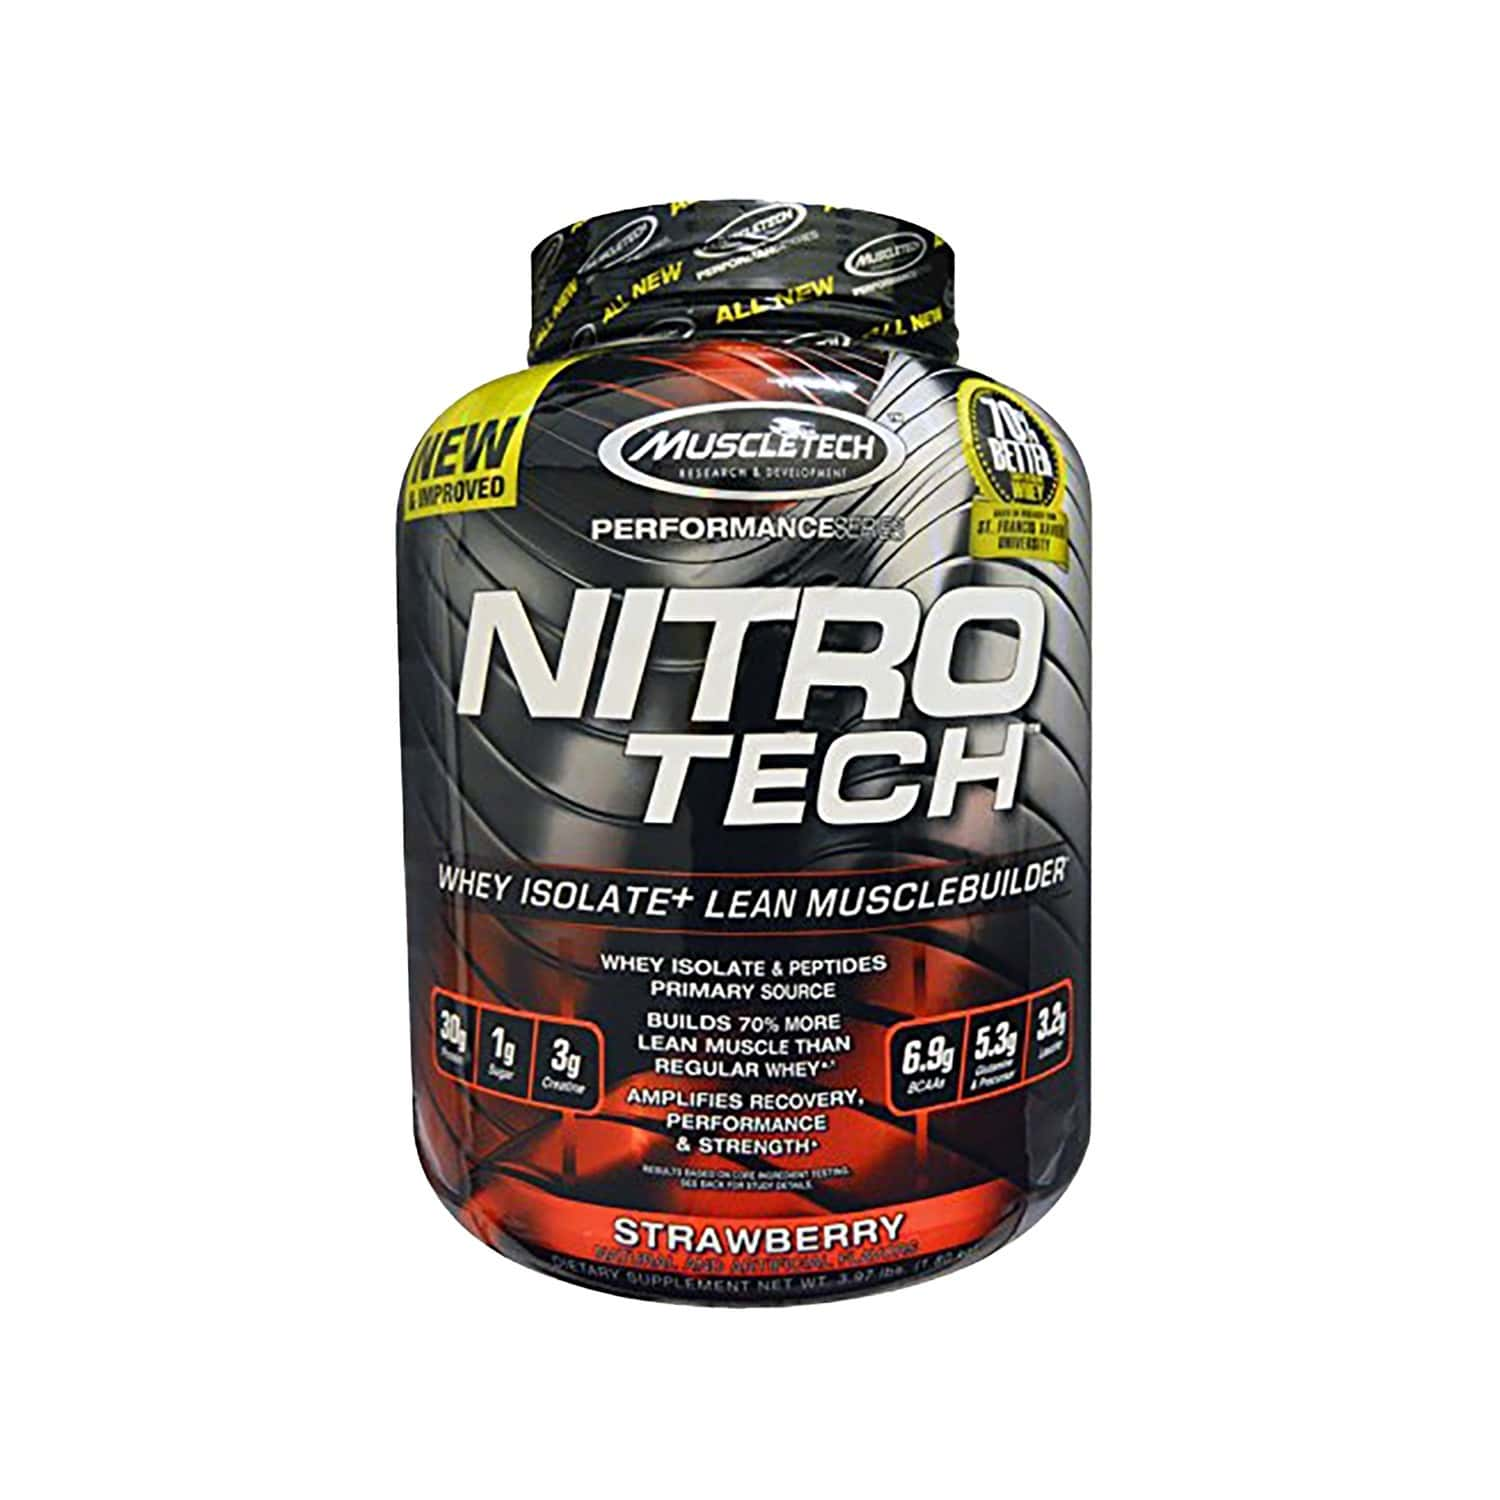 Muscletech Strawberry Nitro Tech Whey Isolate + Lean Muscle - 1800 Gm